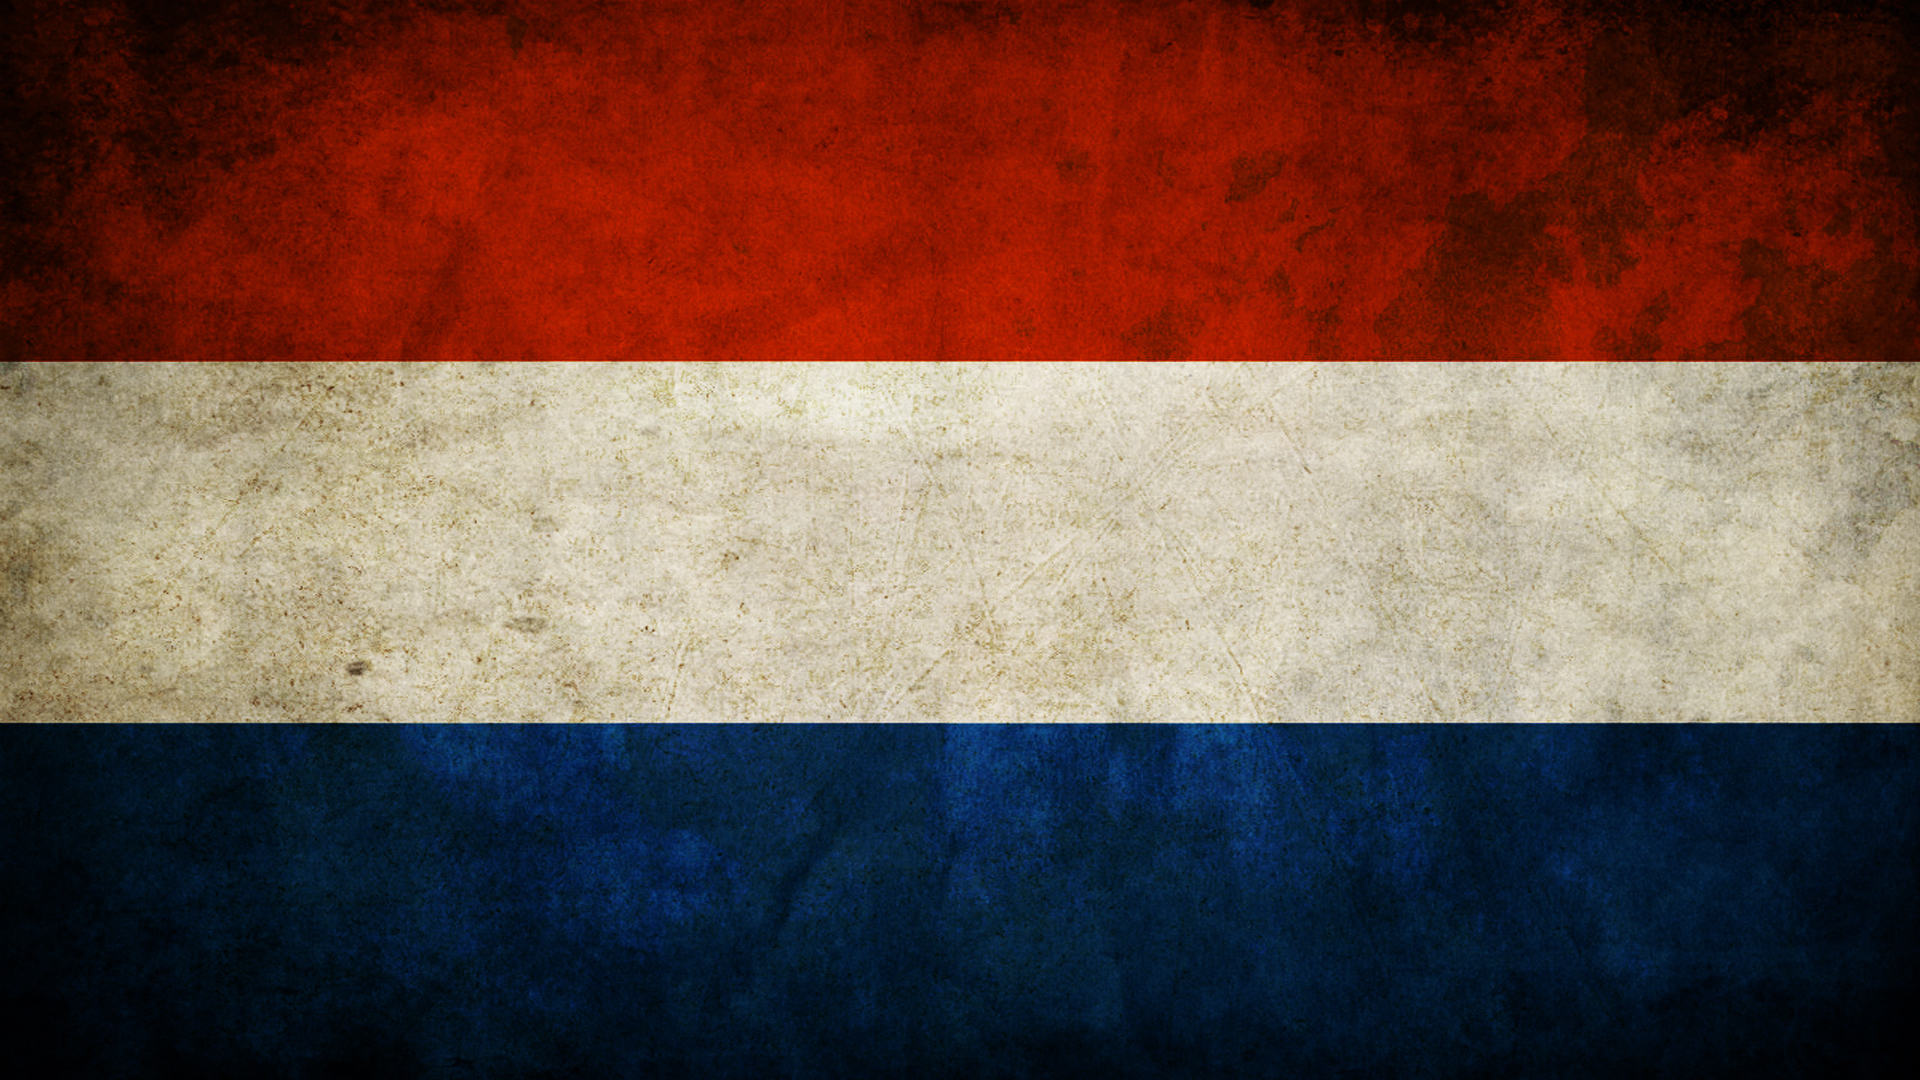 Dutch Flags (The Netherlands) from The World Flag Database